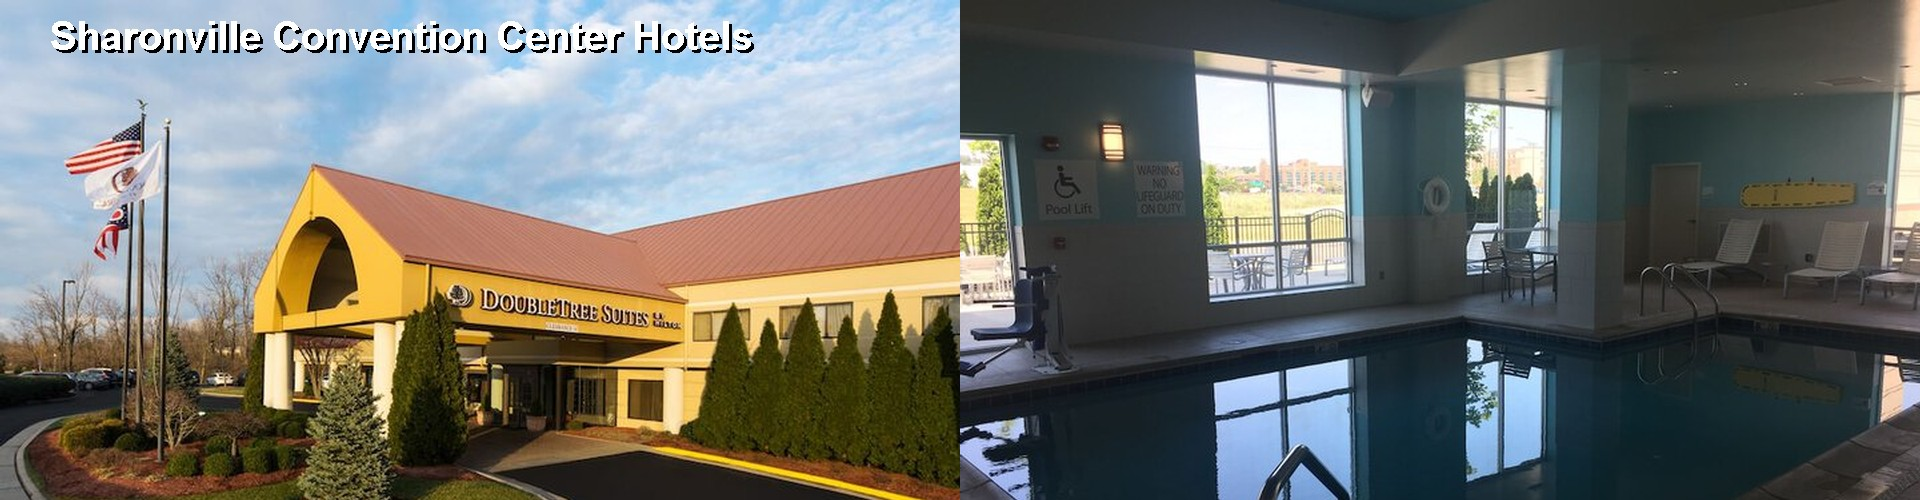 5 Best Hotels near Sharonville Convention Center